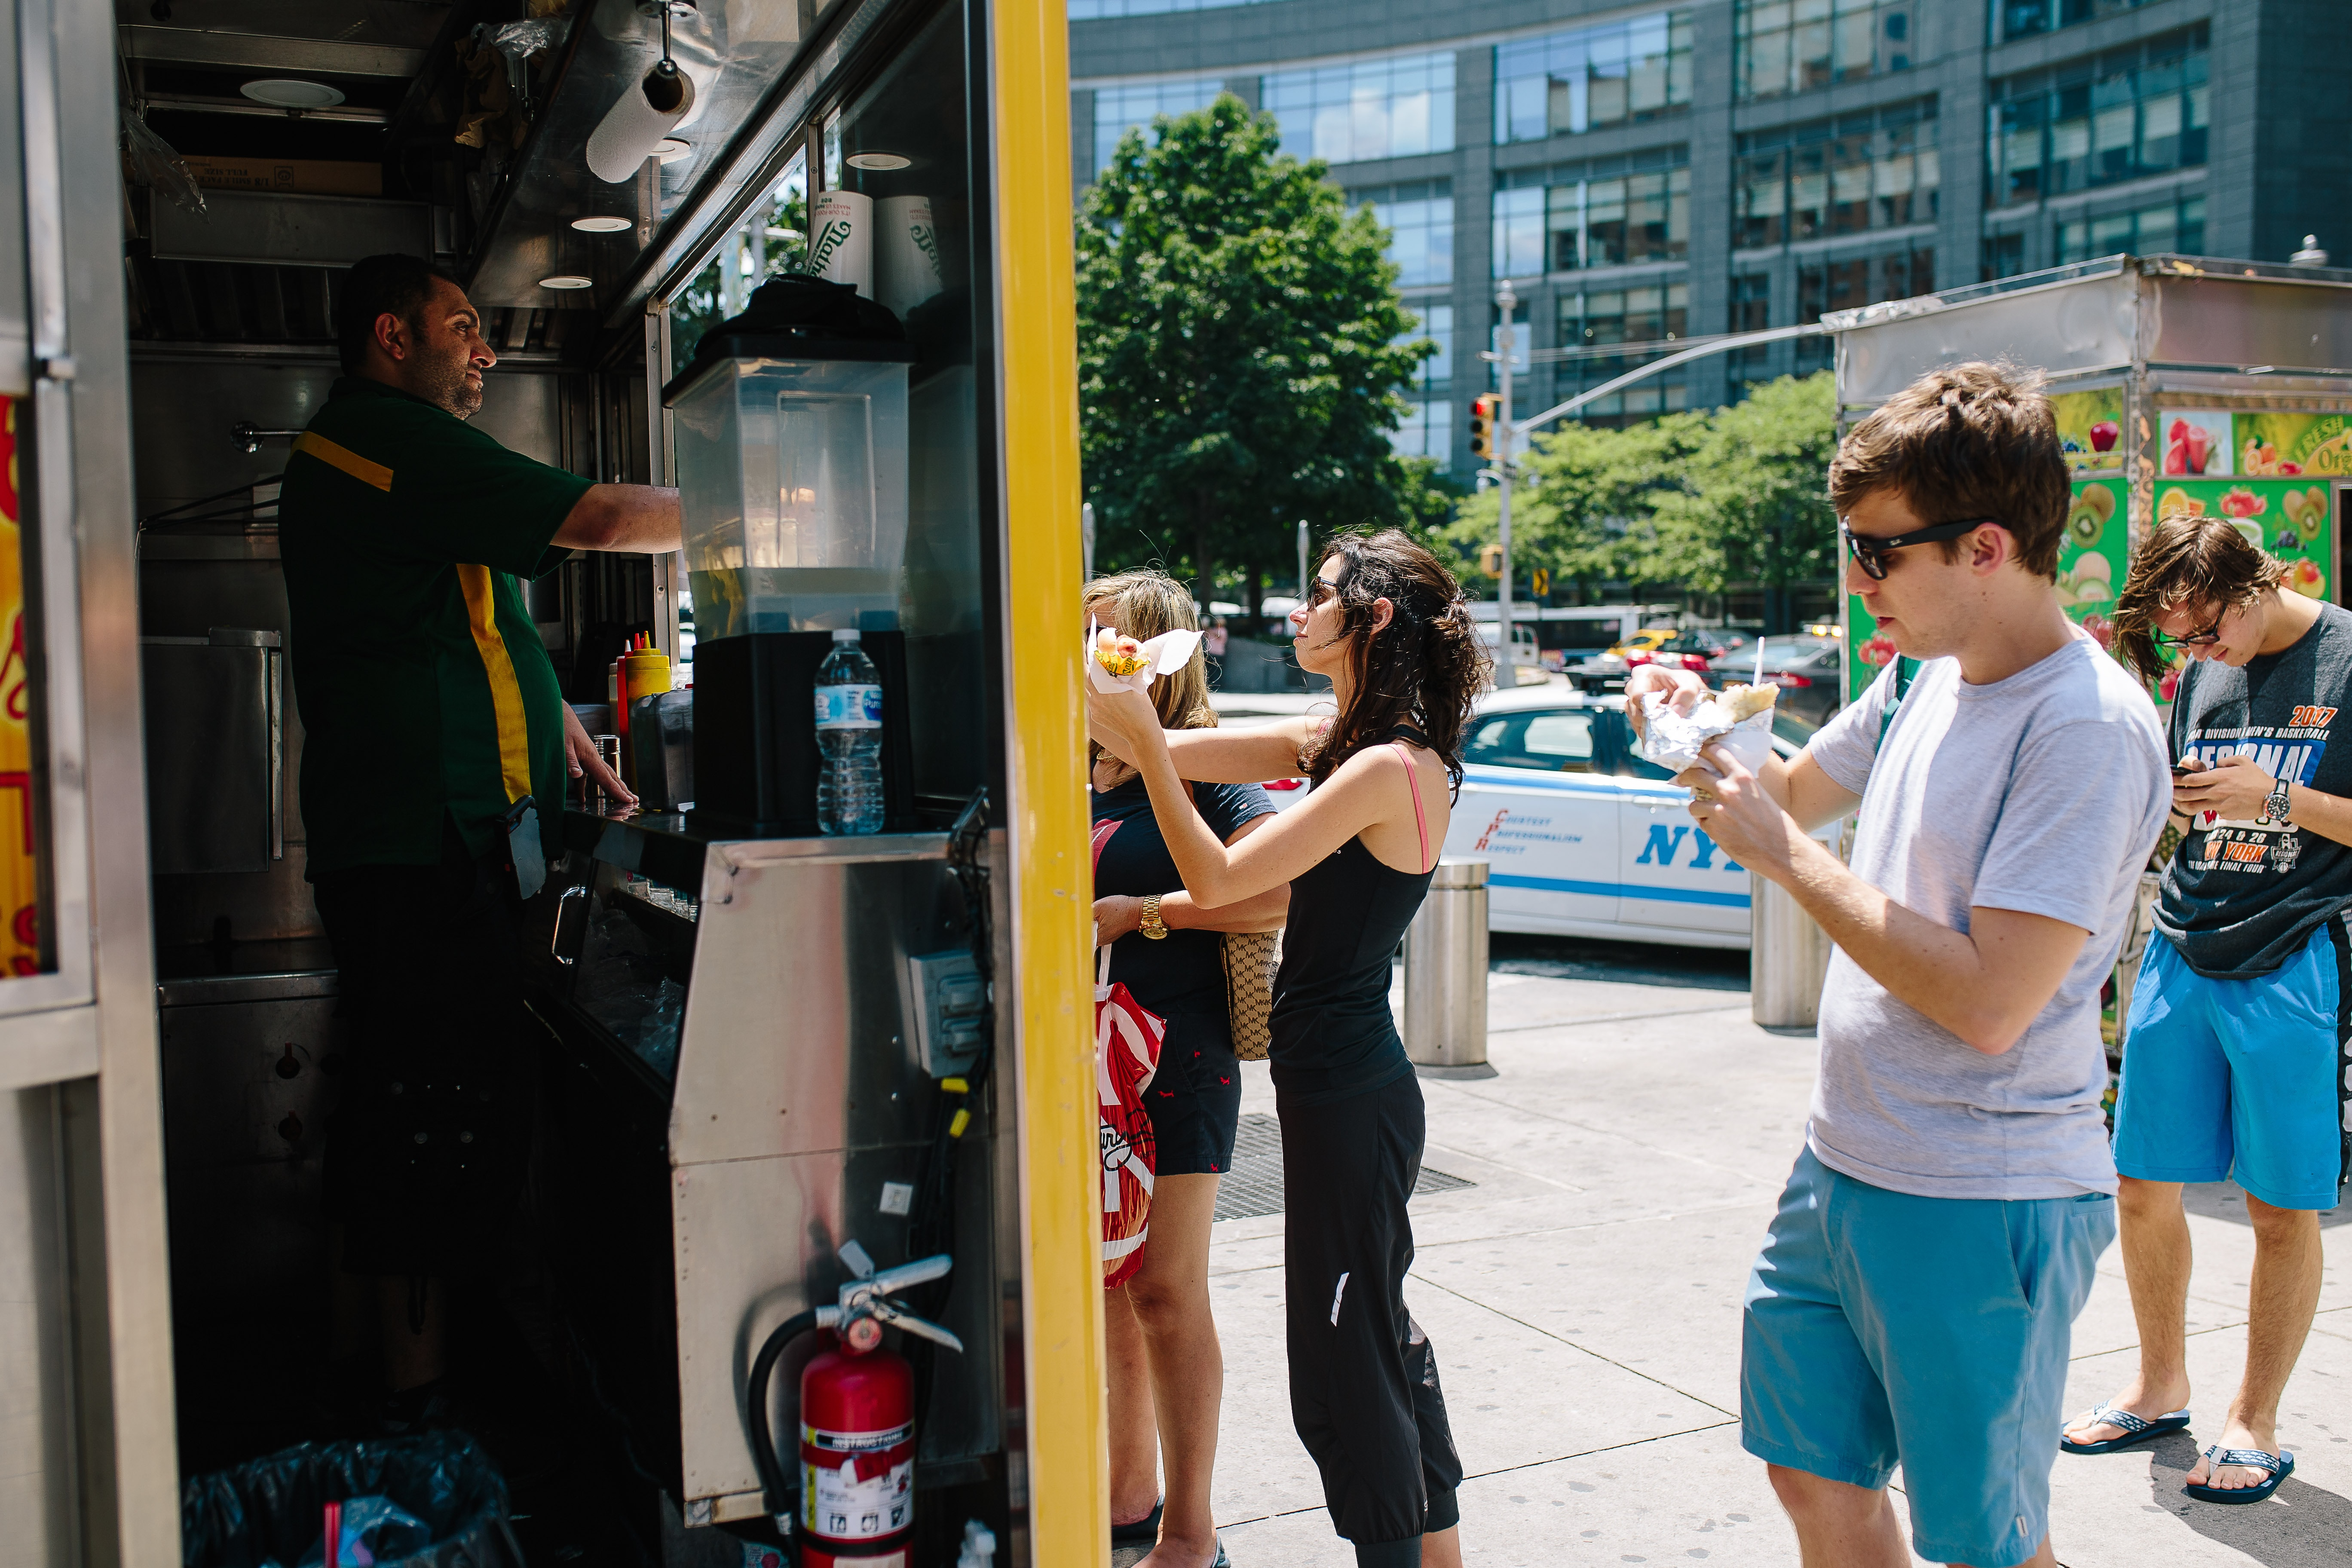 Customers Wait for Their Food at a Food Truck